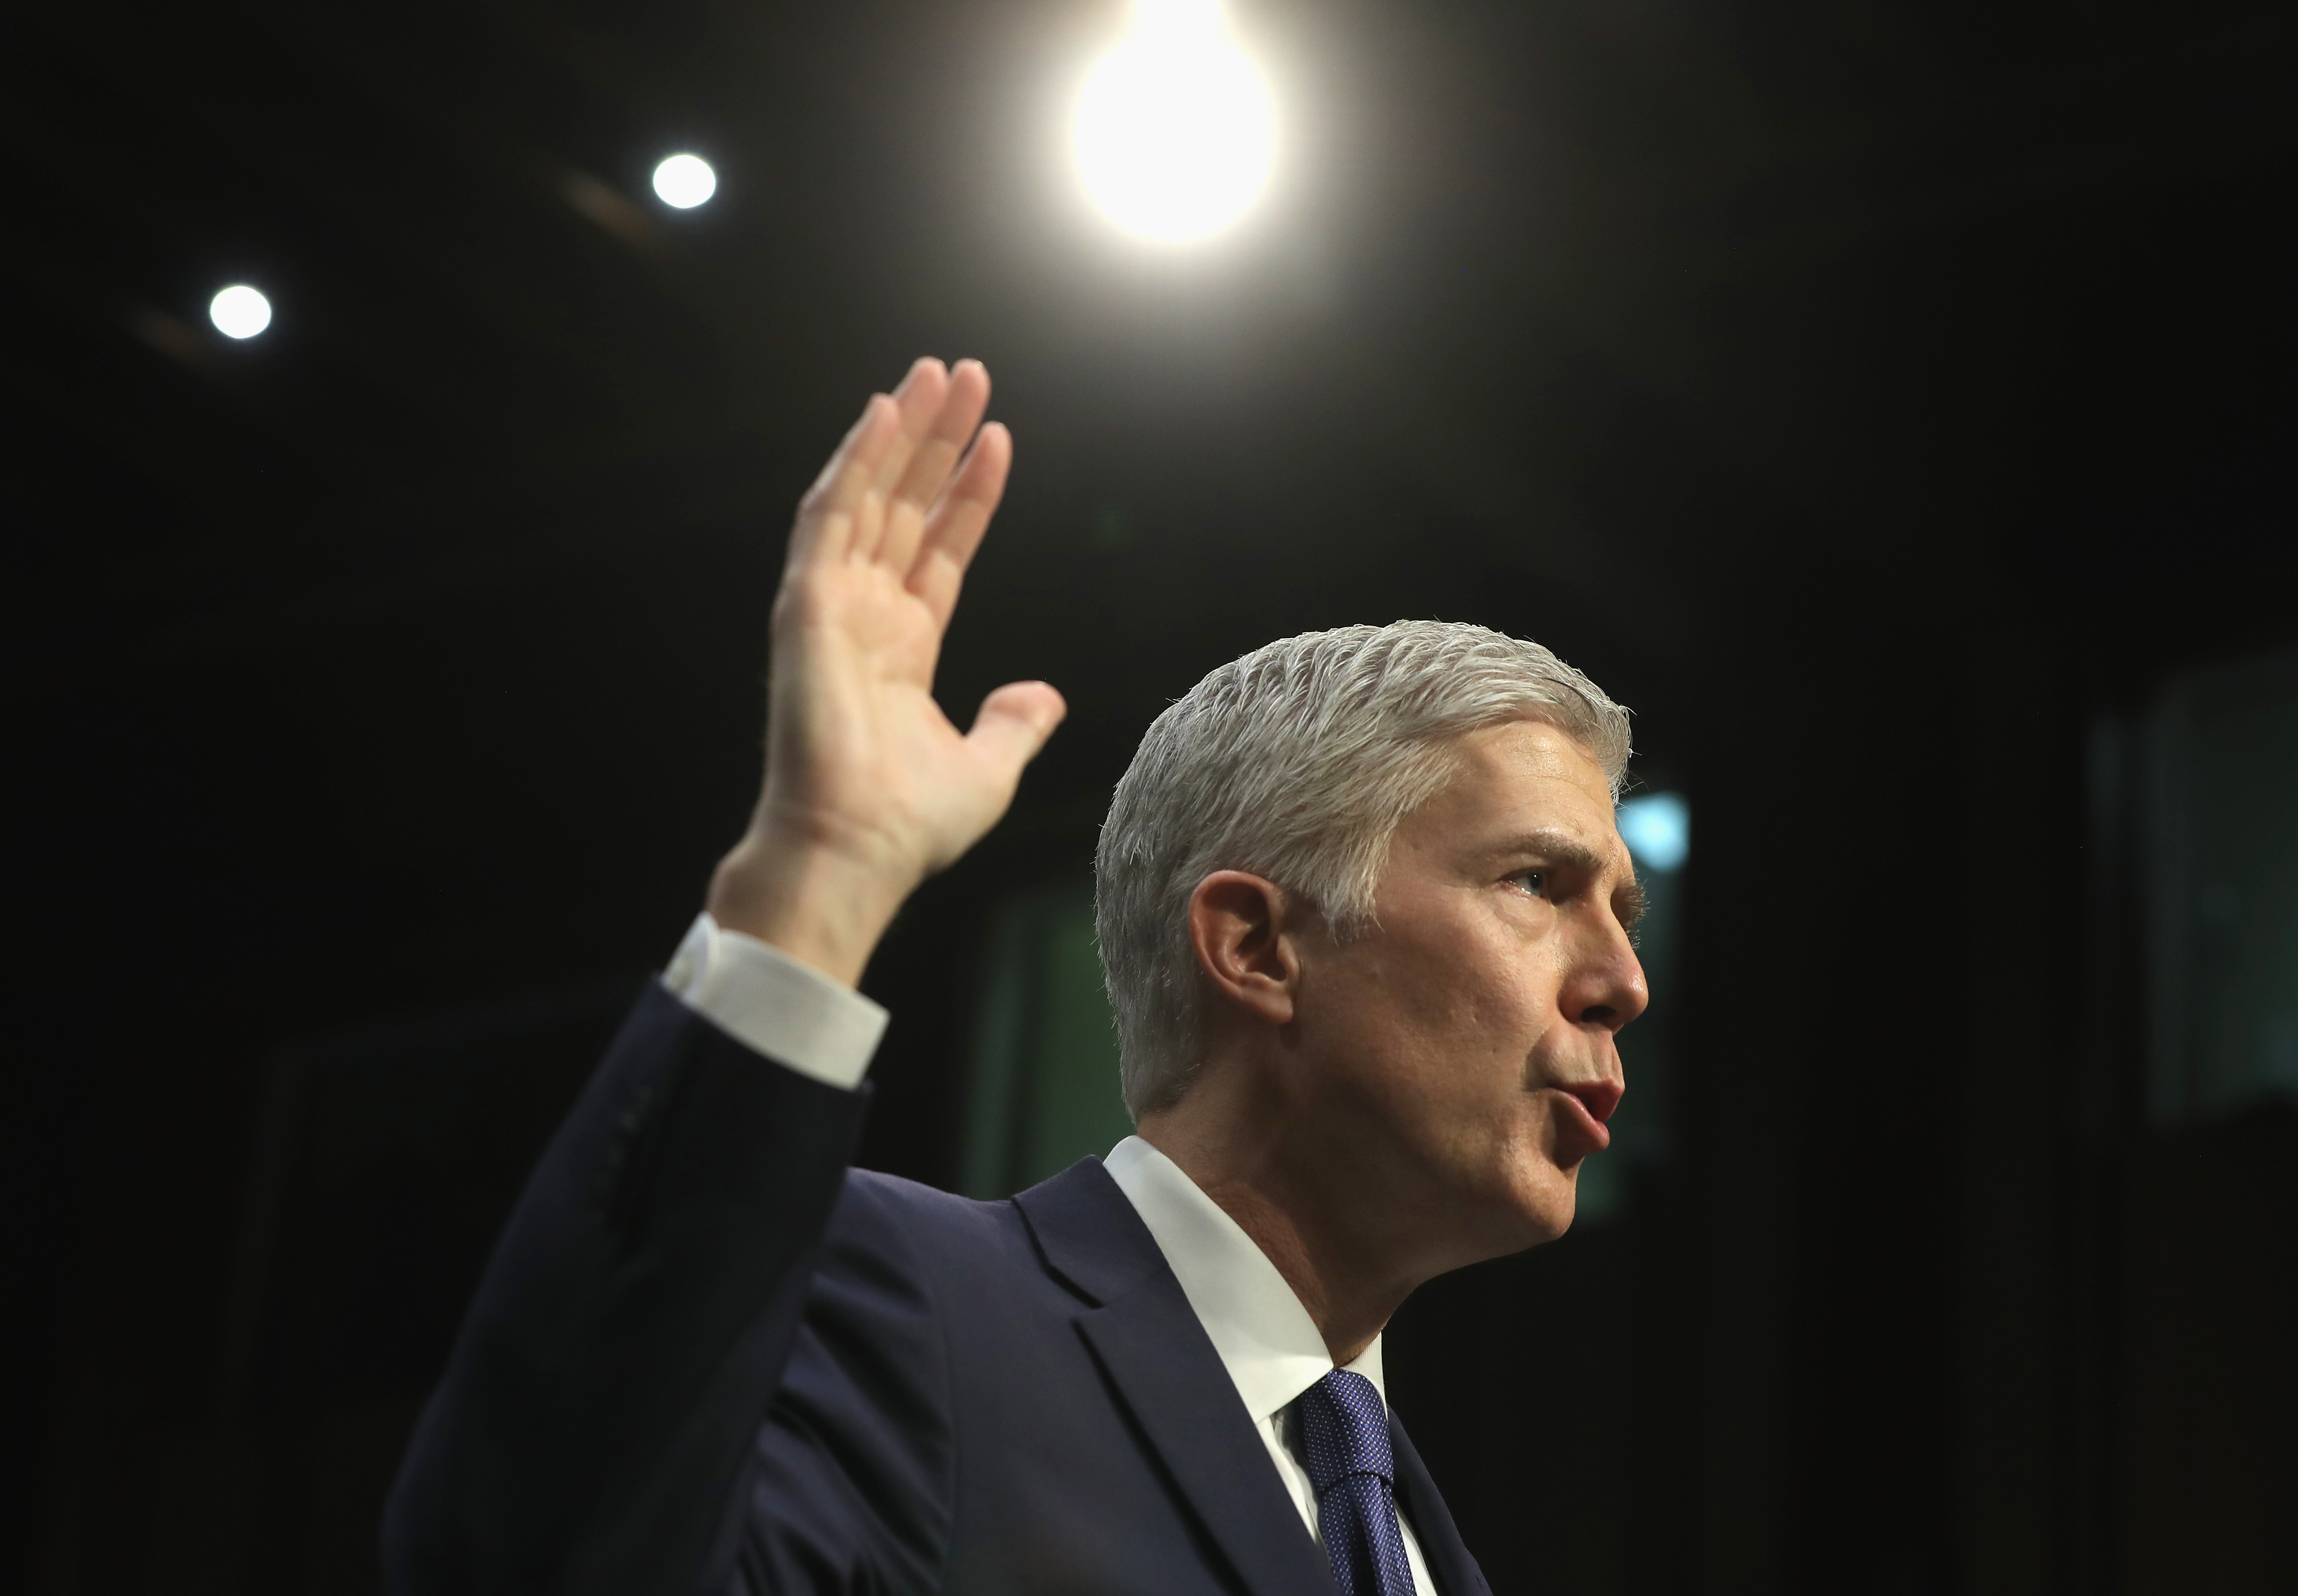 Judge Neil Gorsuch is sworn in on the first day of his Supreme Court confirmation hearing before the Senate Judiciary Committee in the Hart Senate Office Building on Capitol Hill March 20, 2017 in Washington, D.C.